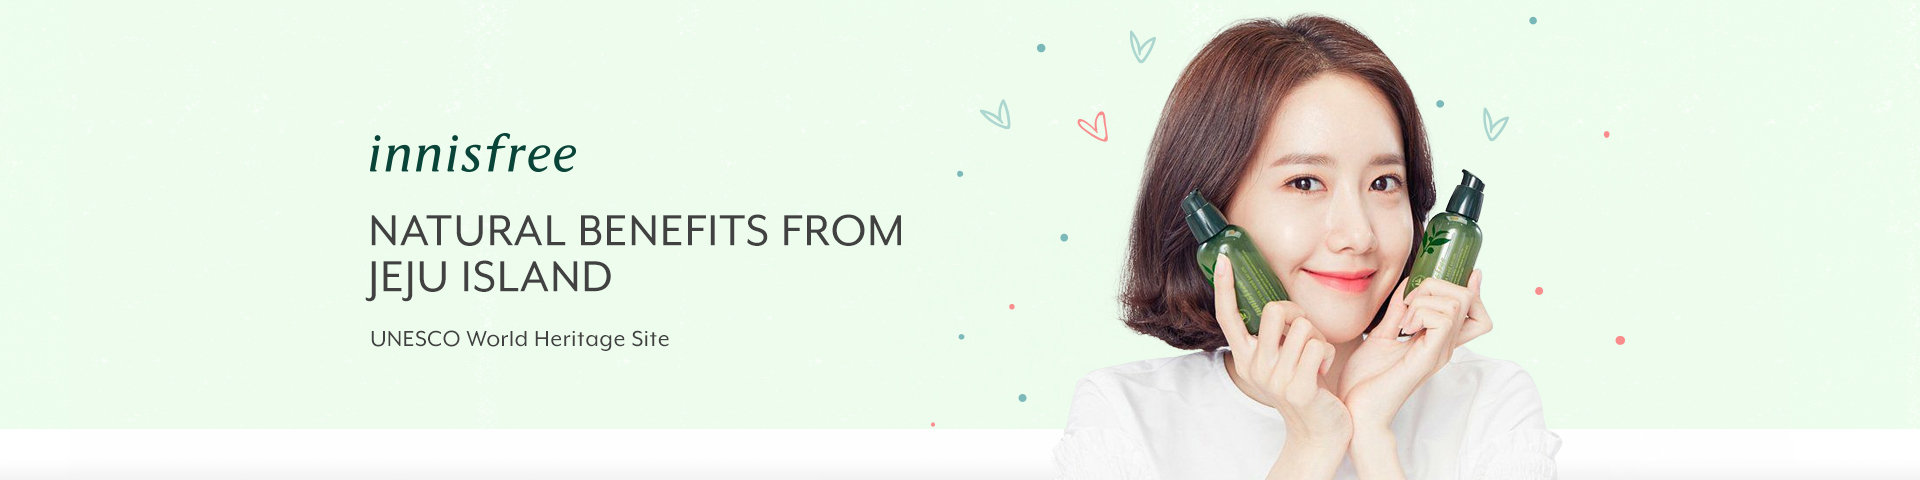 Innisfree Thematic Banner